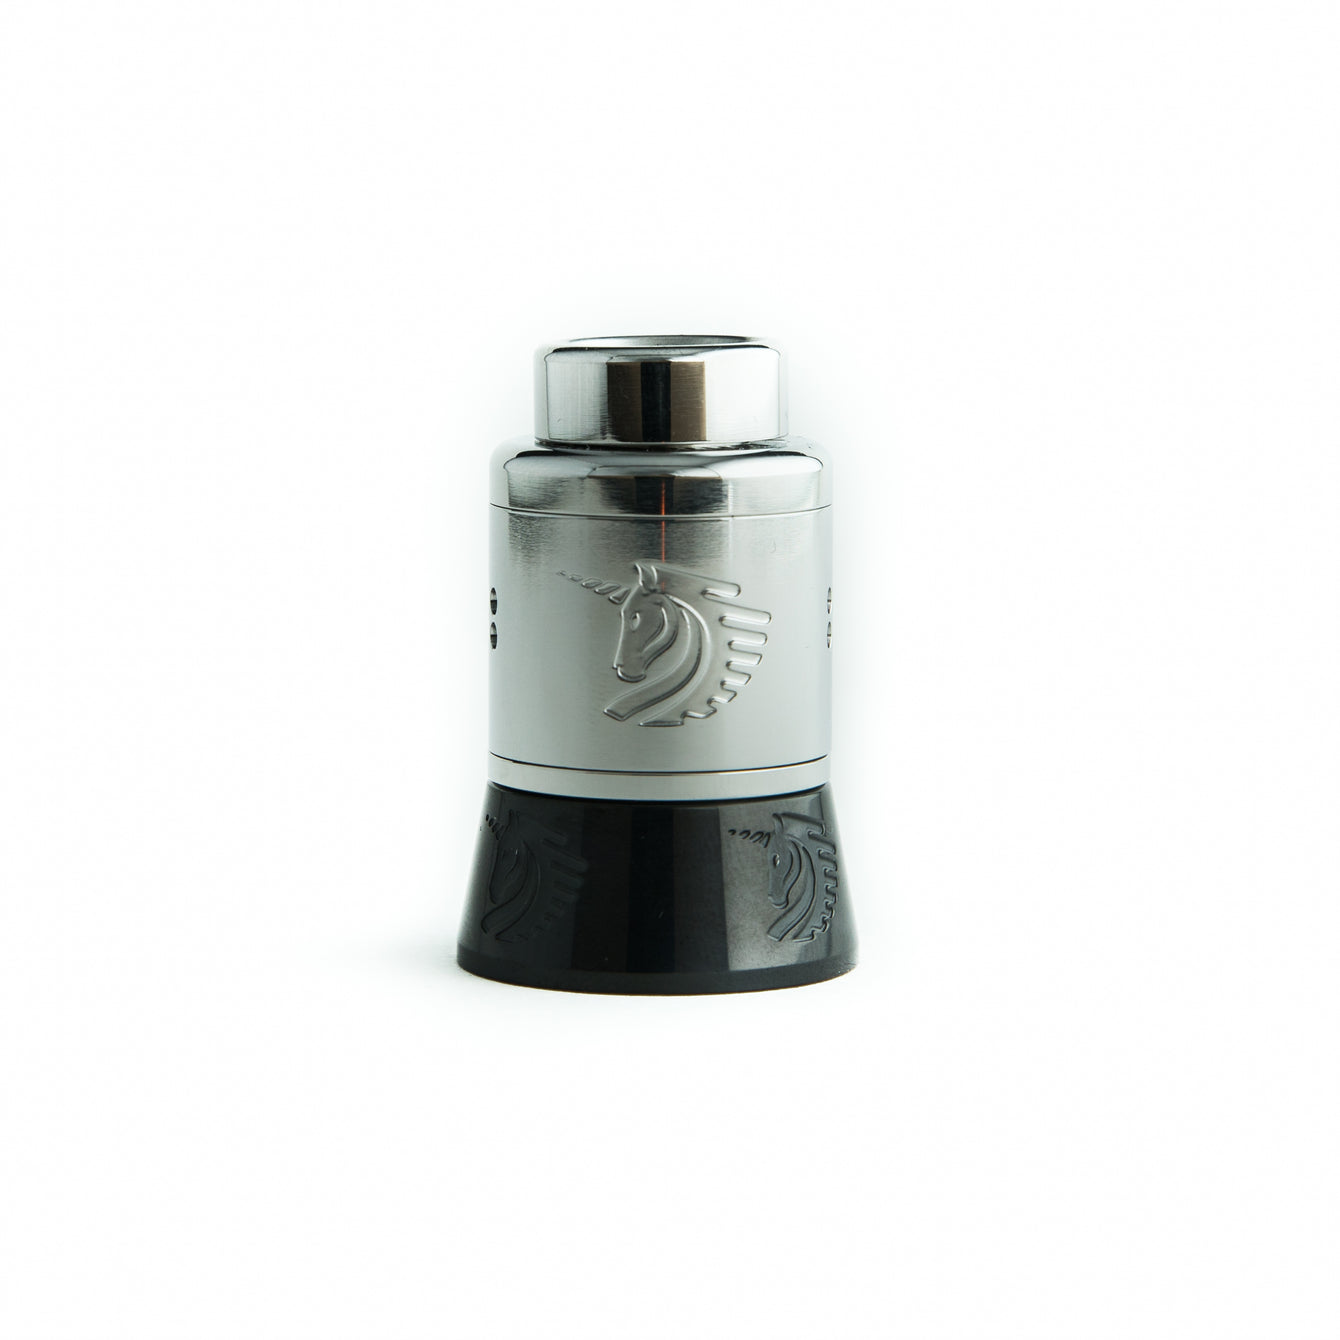 Polish Stainless Steel RDA